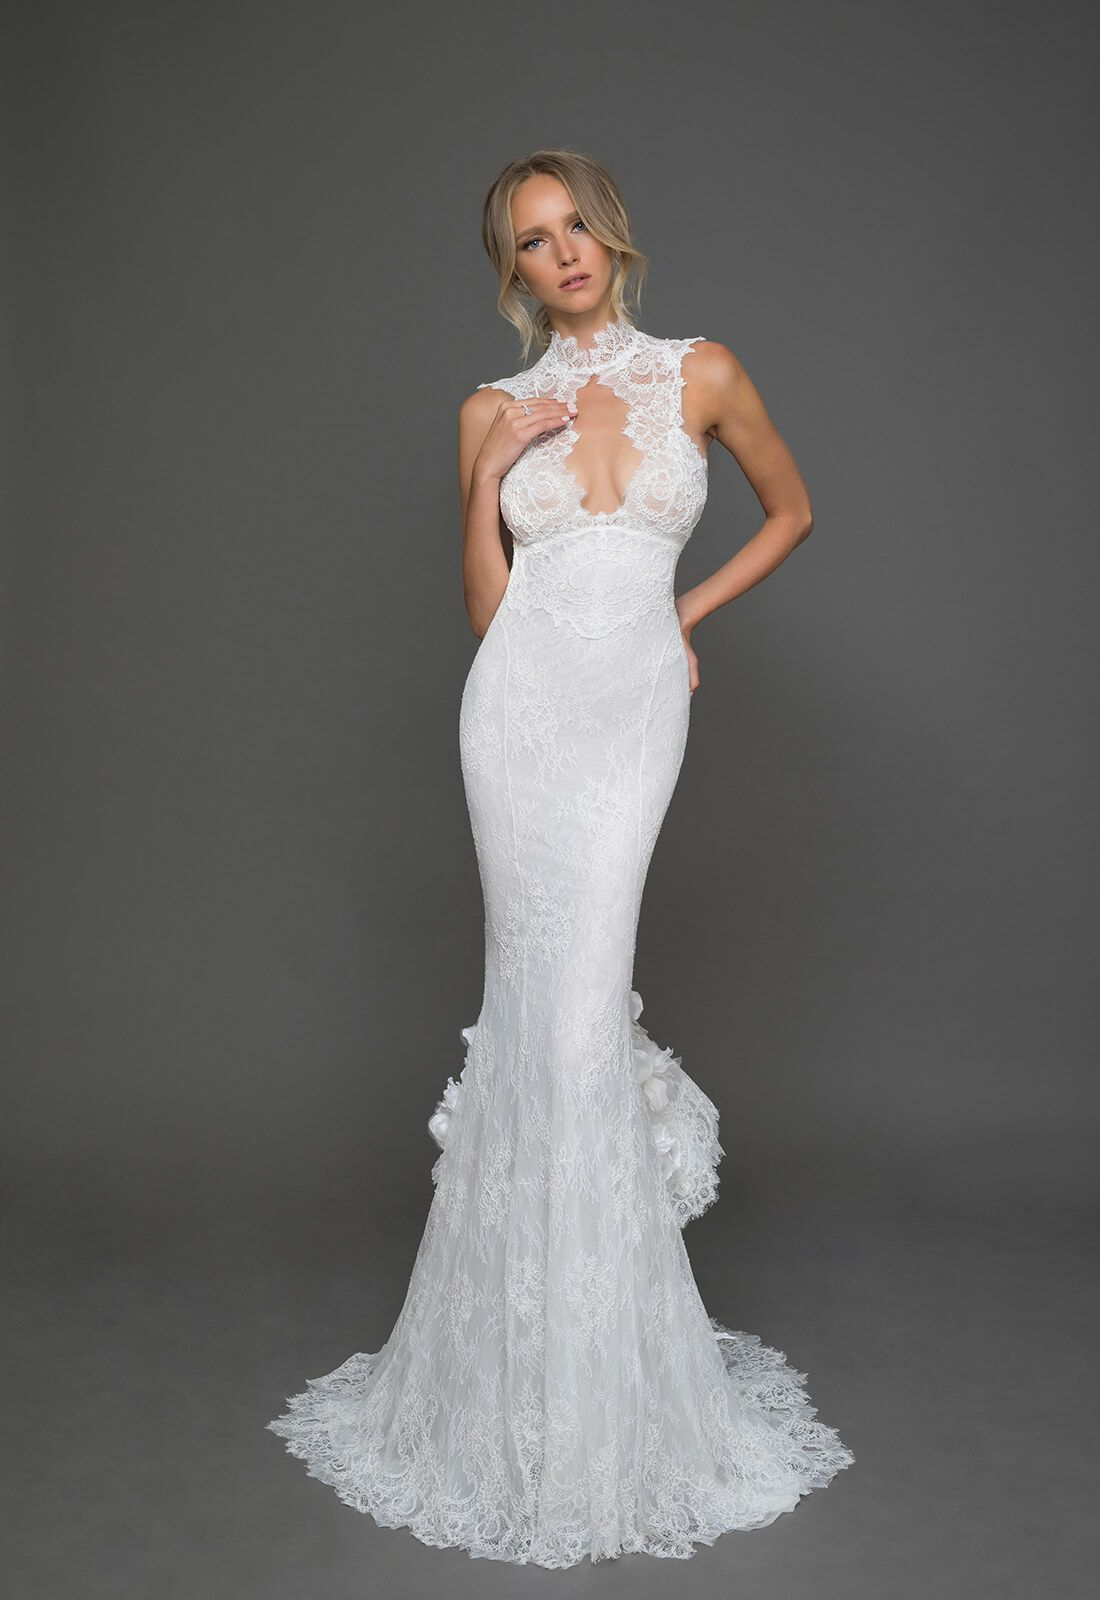 Wedding dress high neck low back  High neck Chantilly lace mermaid gown with low keyhole back buttons